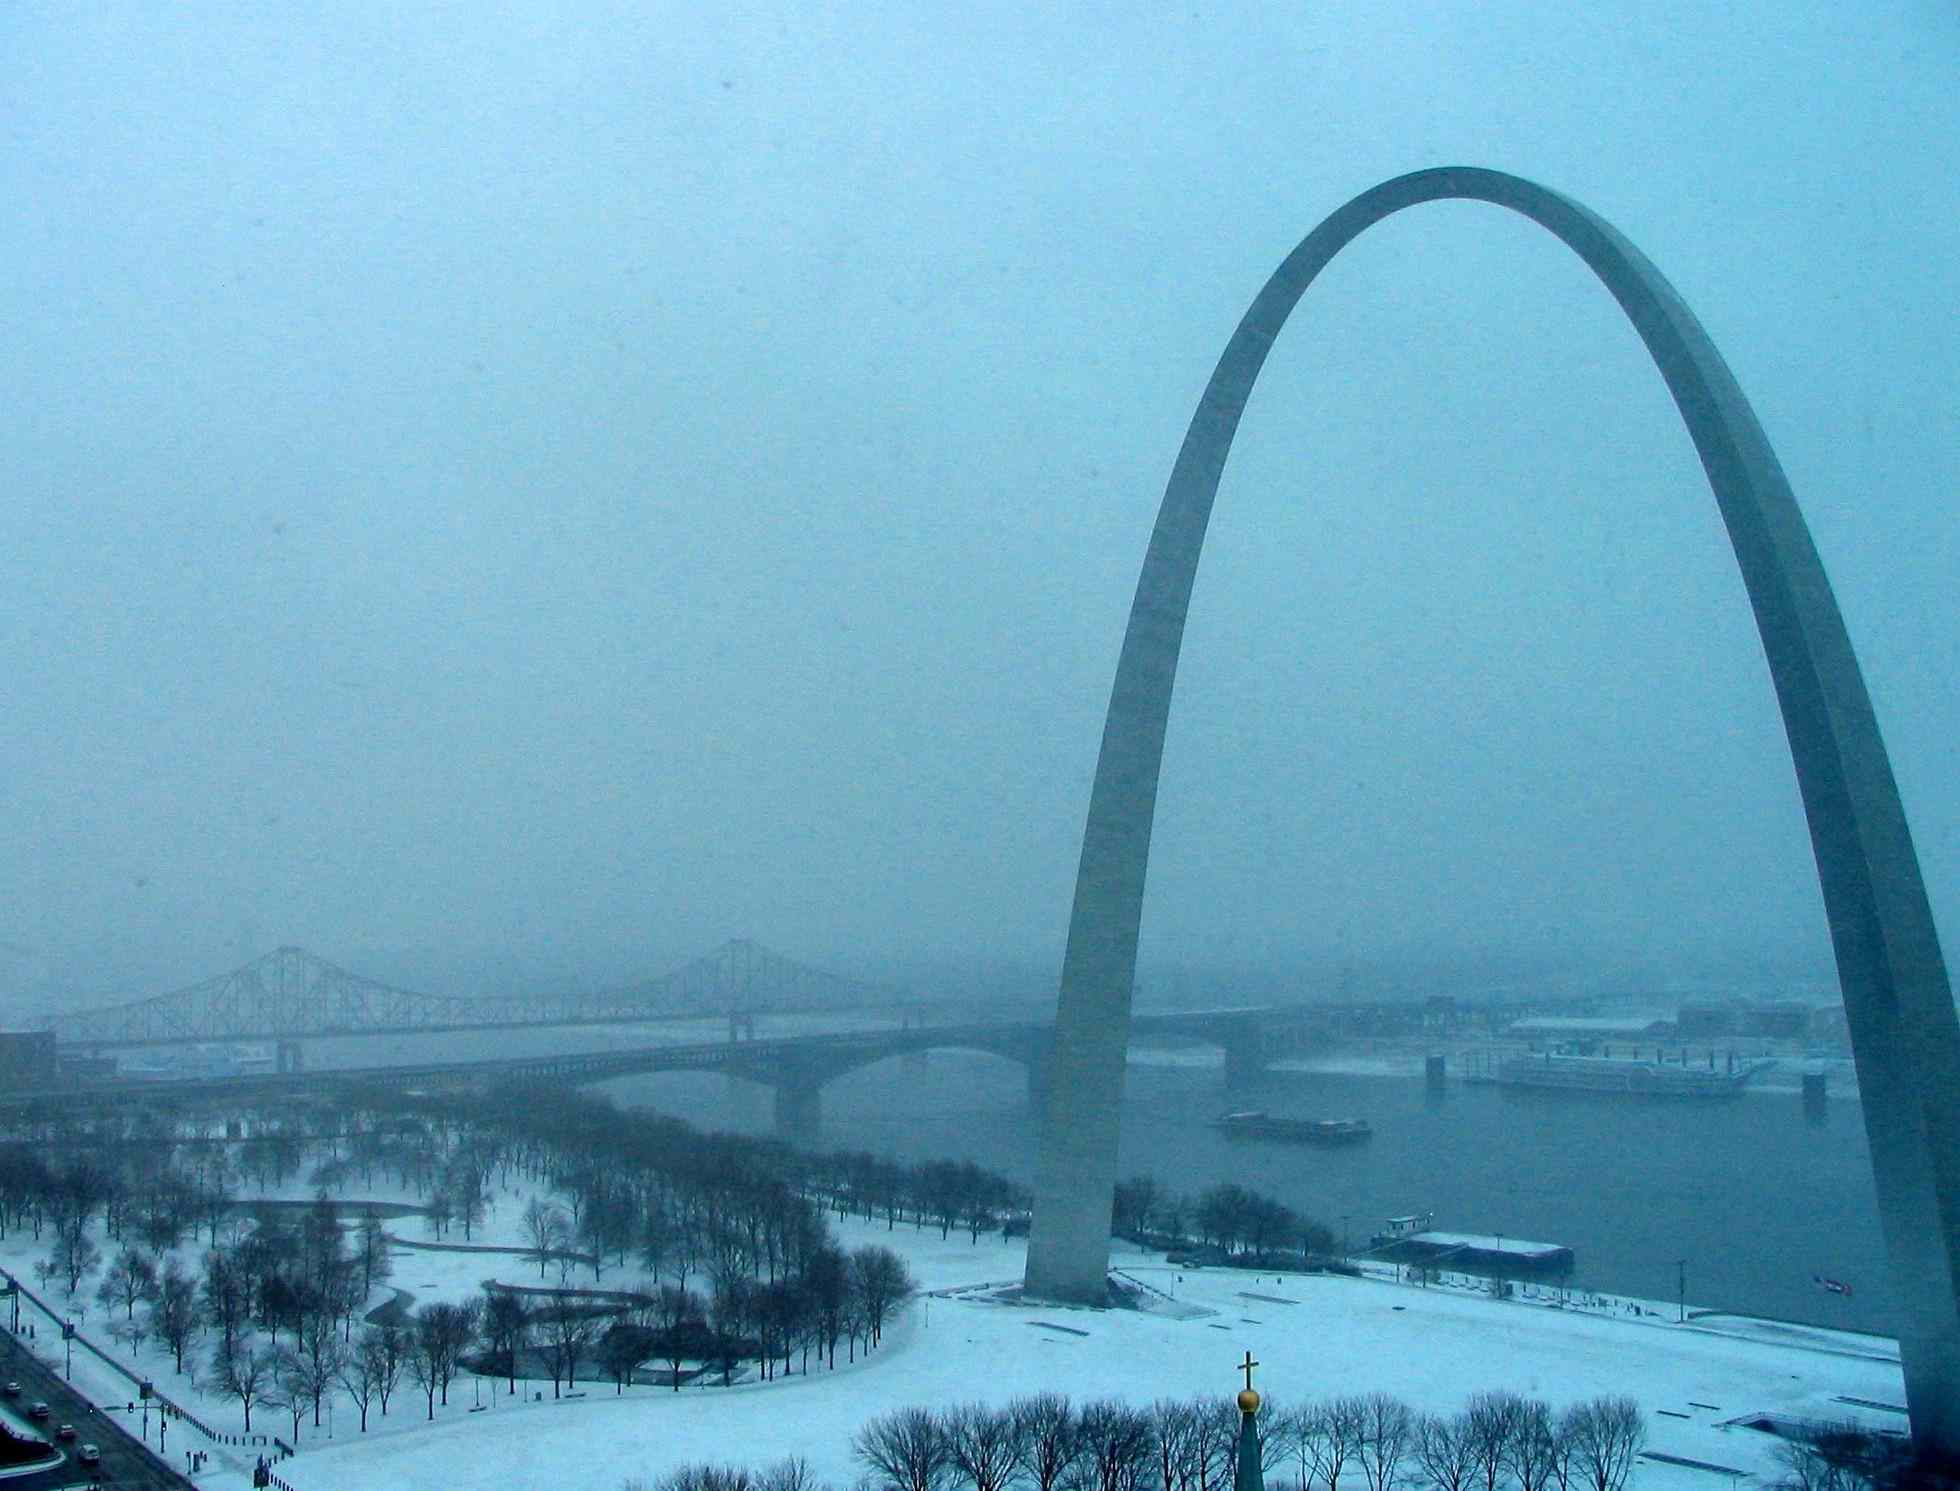 arch landscape in snow - lo res.jpg